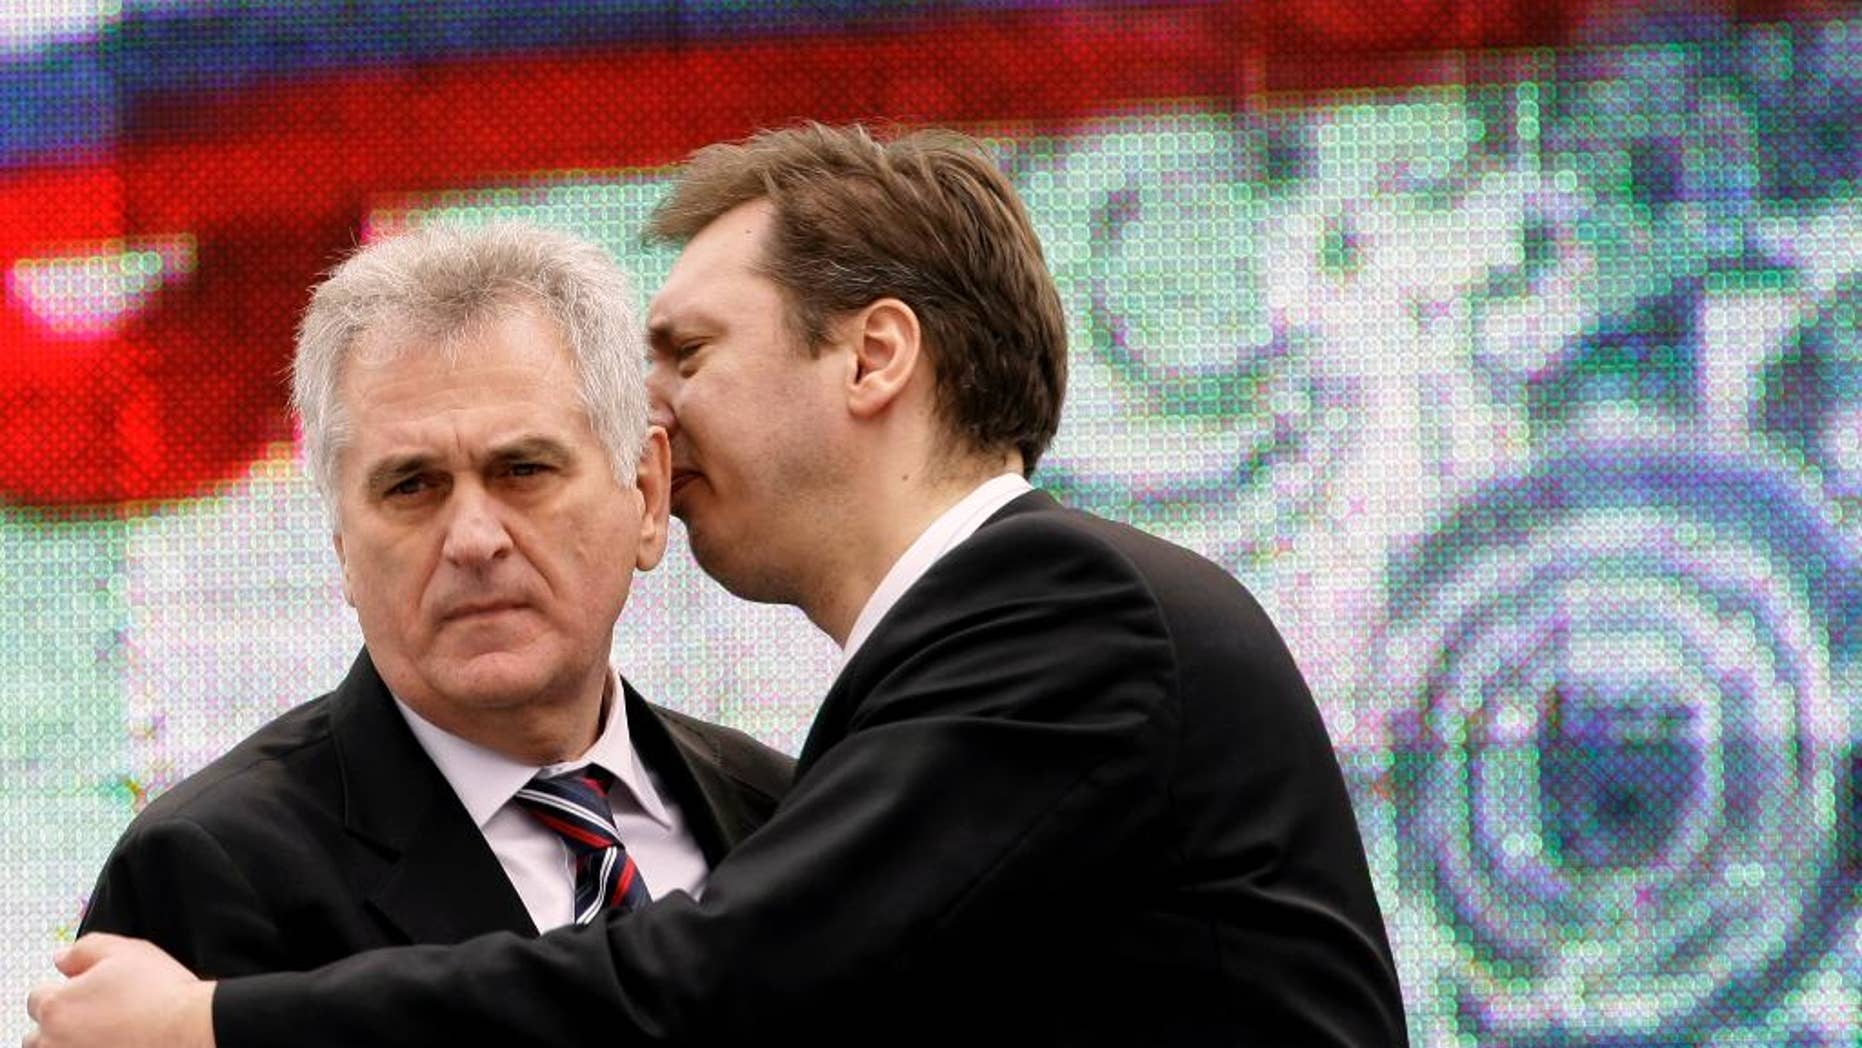 In this April 16, 2011 photo, Serbian Prime Minister Aleksandar Vucic, right, speaks with Serbian President Tomislav Nikolic during a protest rally in Belgrade, Serbia. Nikolic has lashed out against the outgoing U.S. administration expressing hope President-elect Donald Trump will be more favourable toward Serbia and its Russia-backed claim over Kosovo. (AP Photo/Darko Vojinovic)